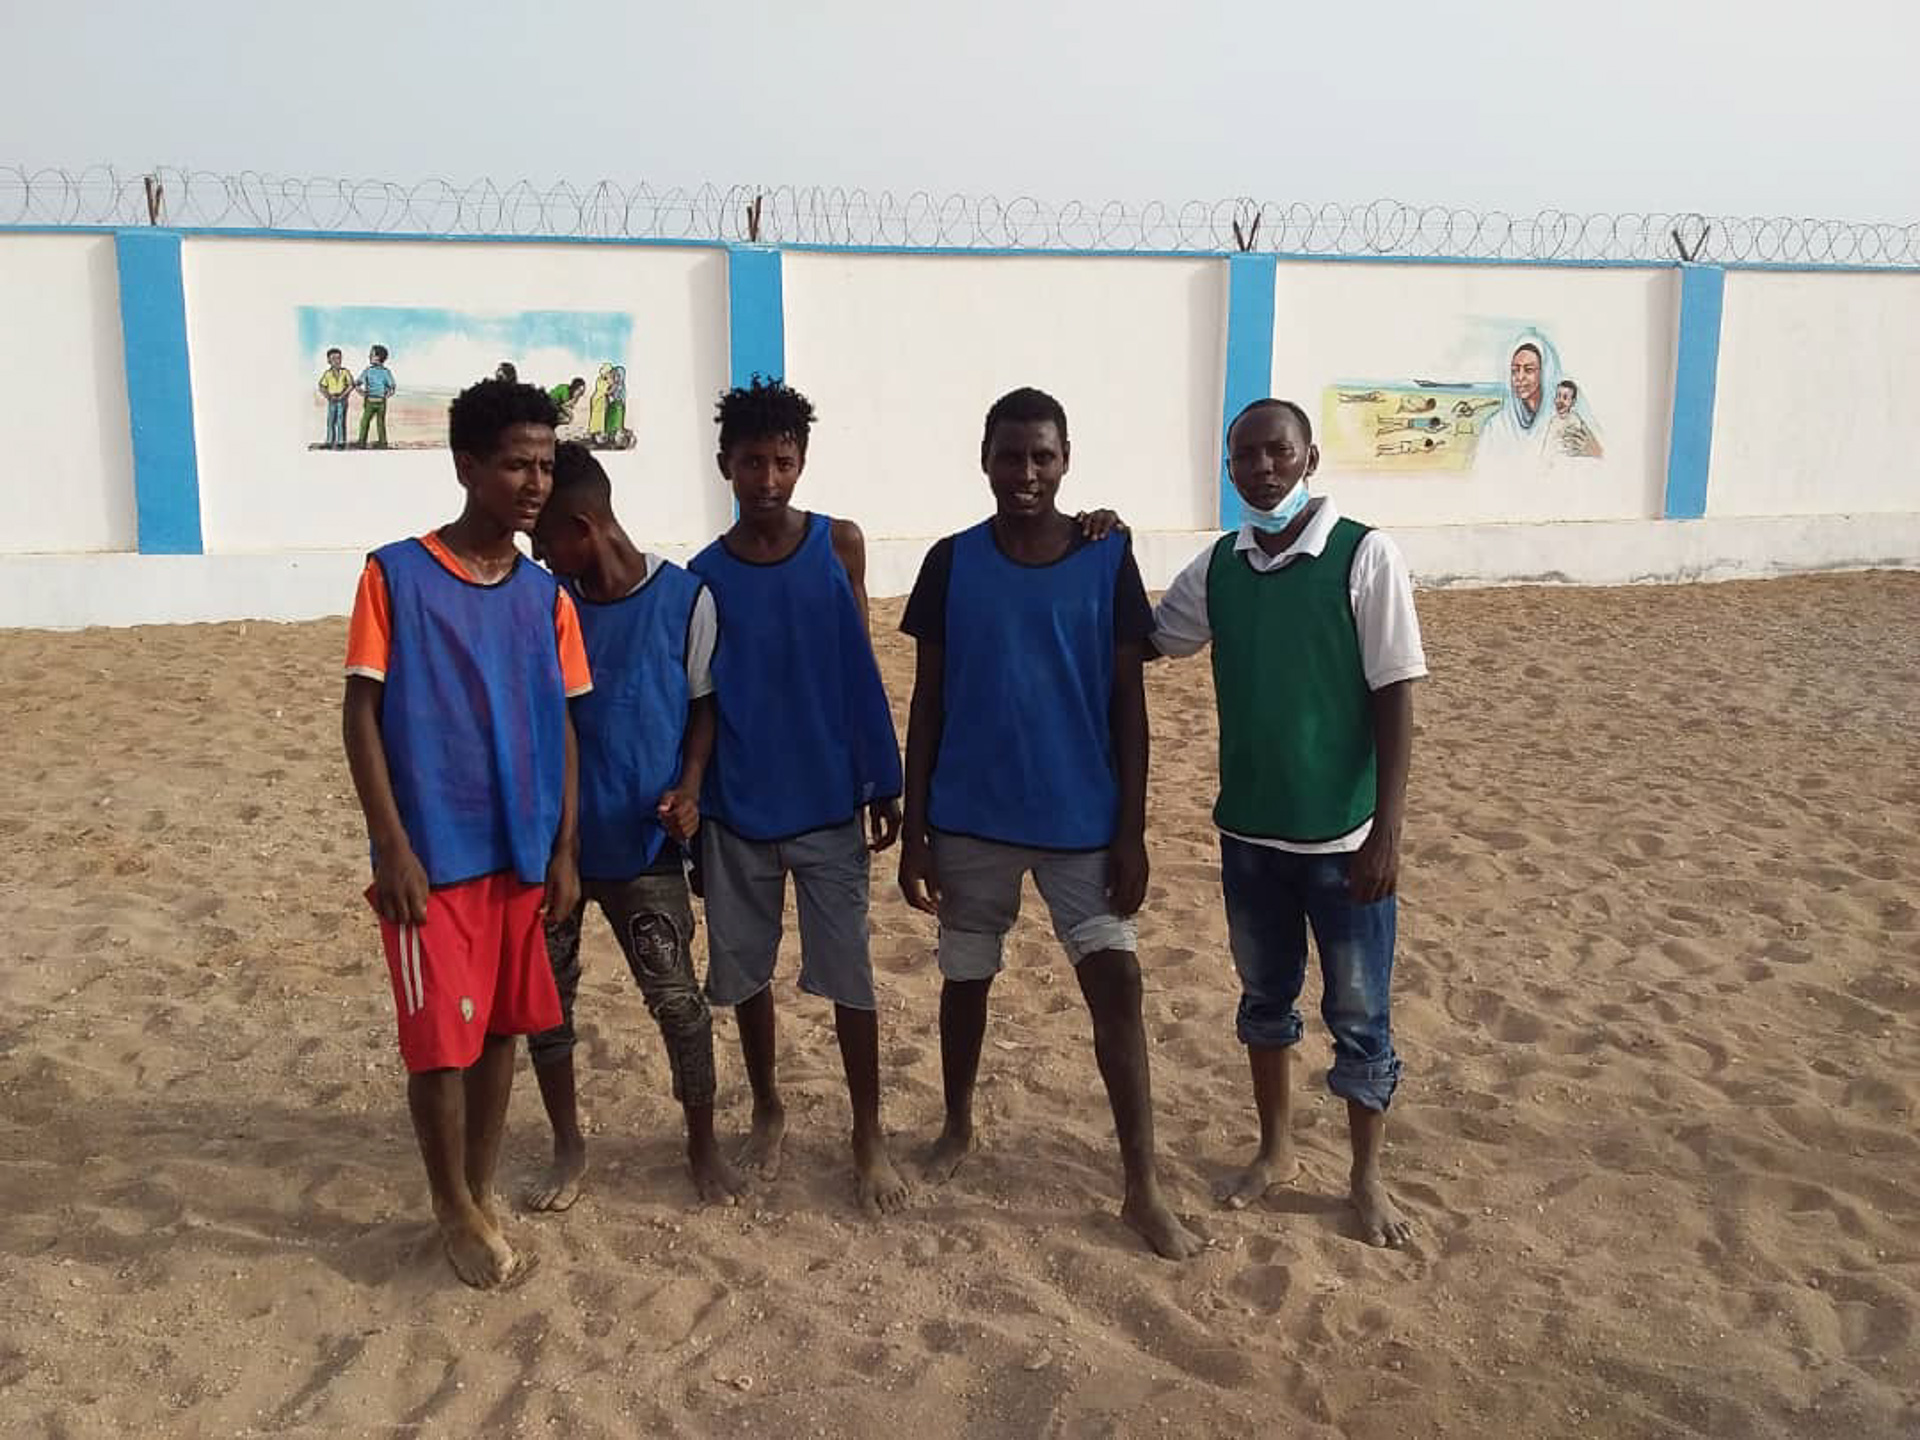 Kofi with some of his friends at the IOM-managed MRC in Obock. Photo: IOM/Alexander Bee